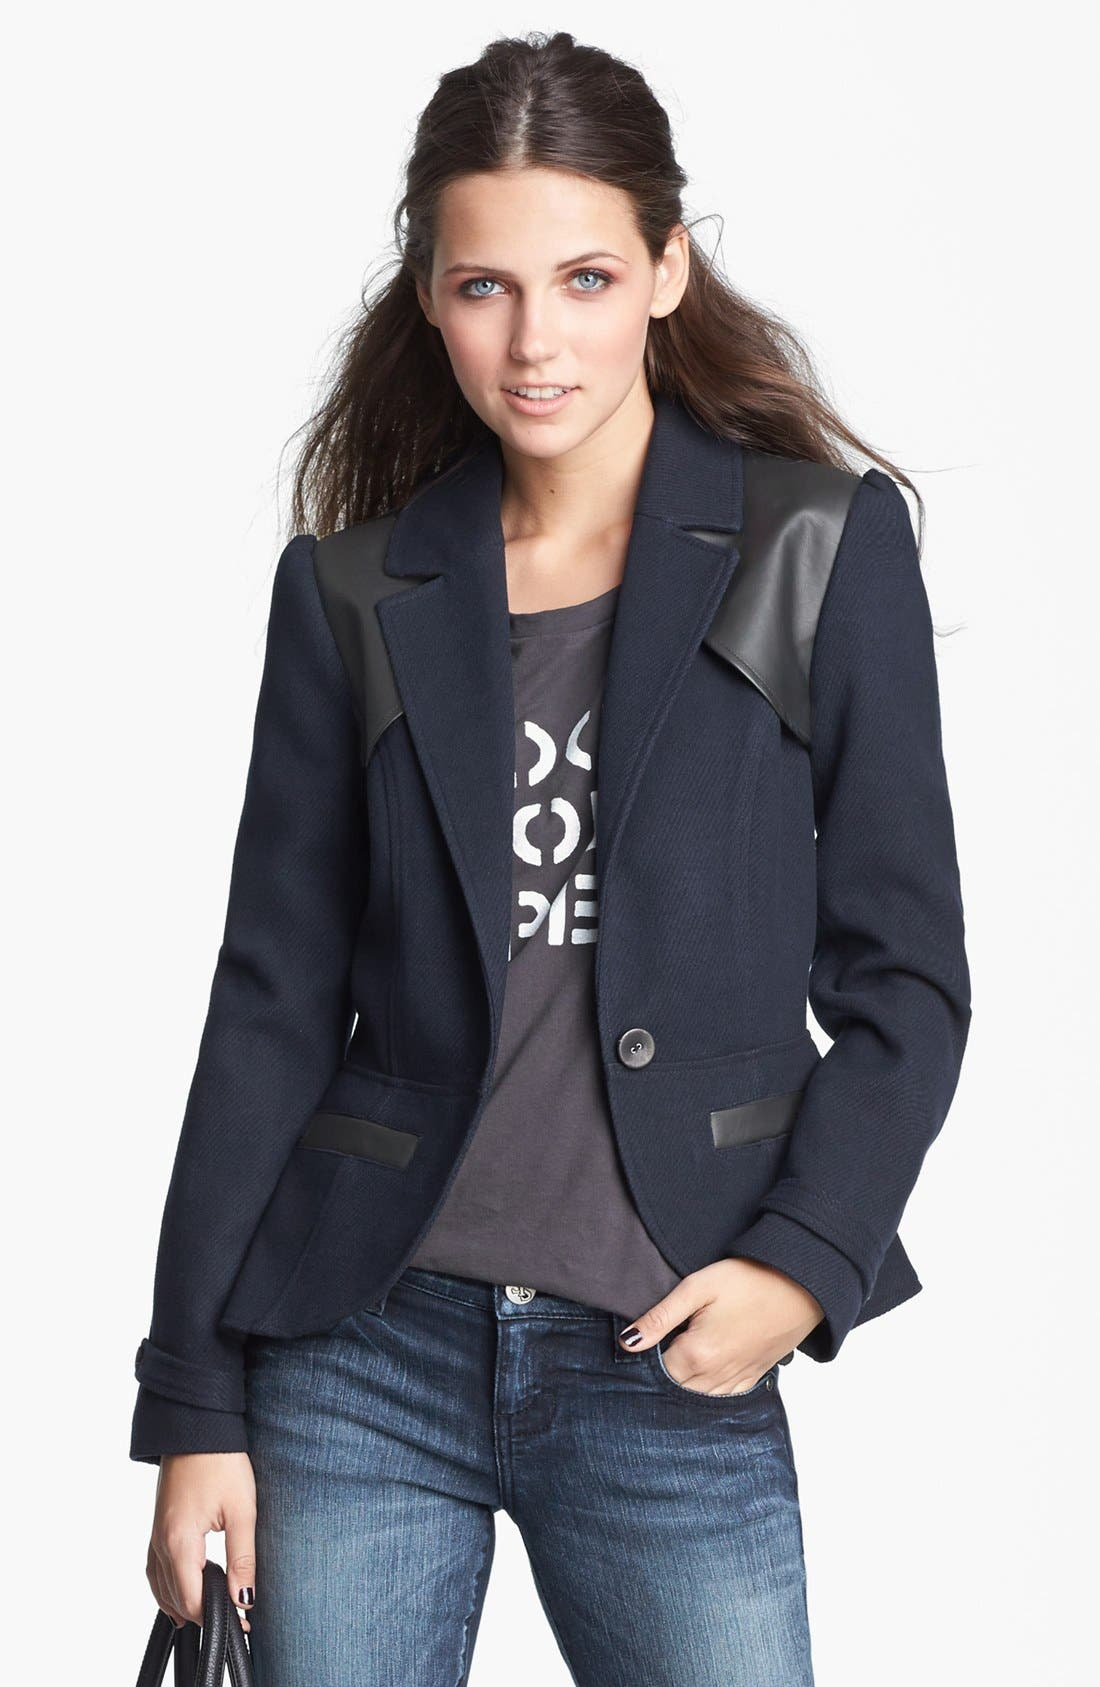 Alternate Image 1 Selected - Tulle Faux Leather Yoke Jacket (Juniors) (Online Only)